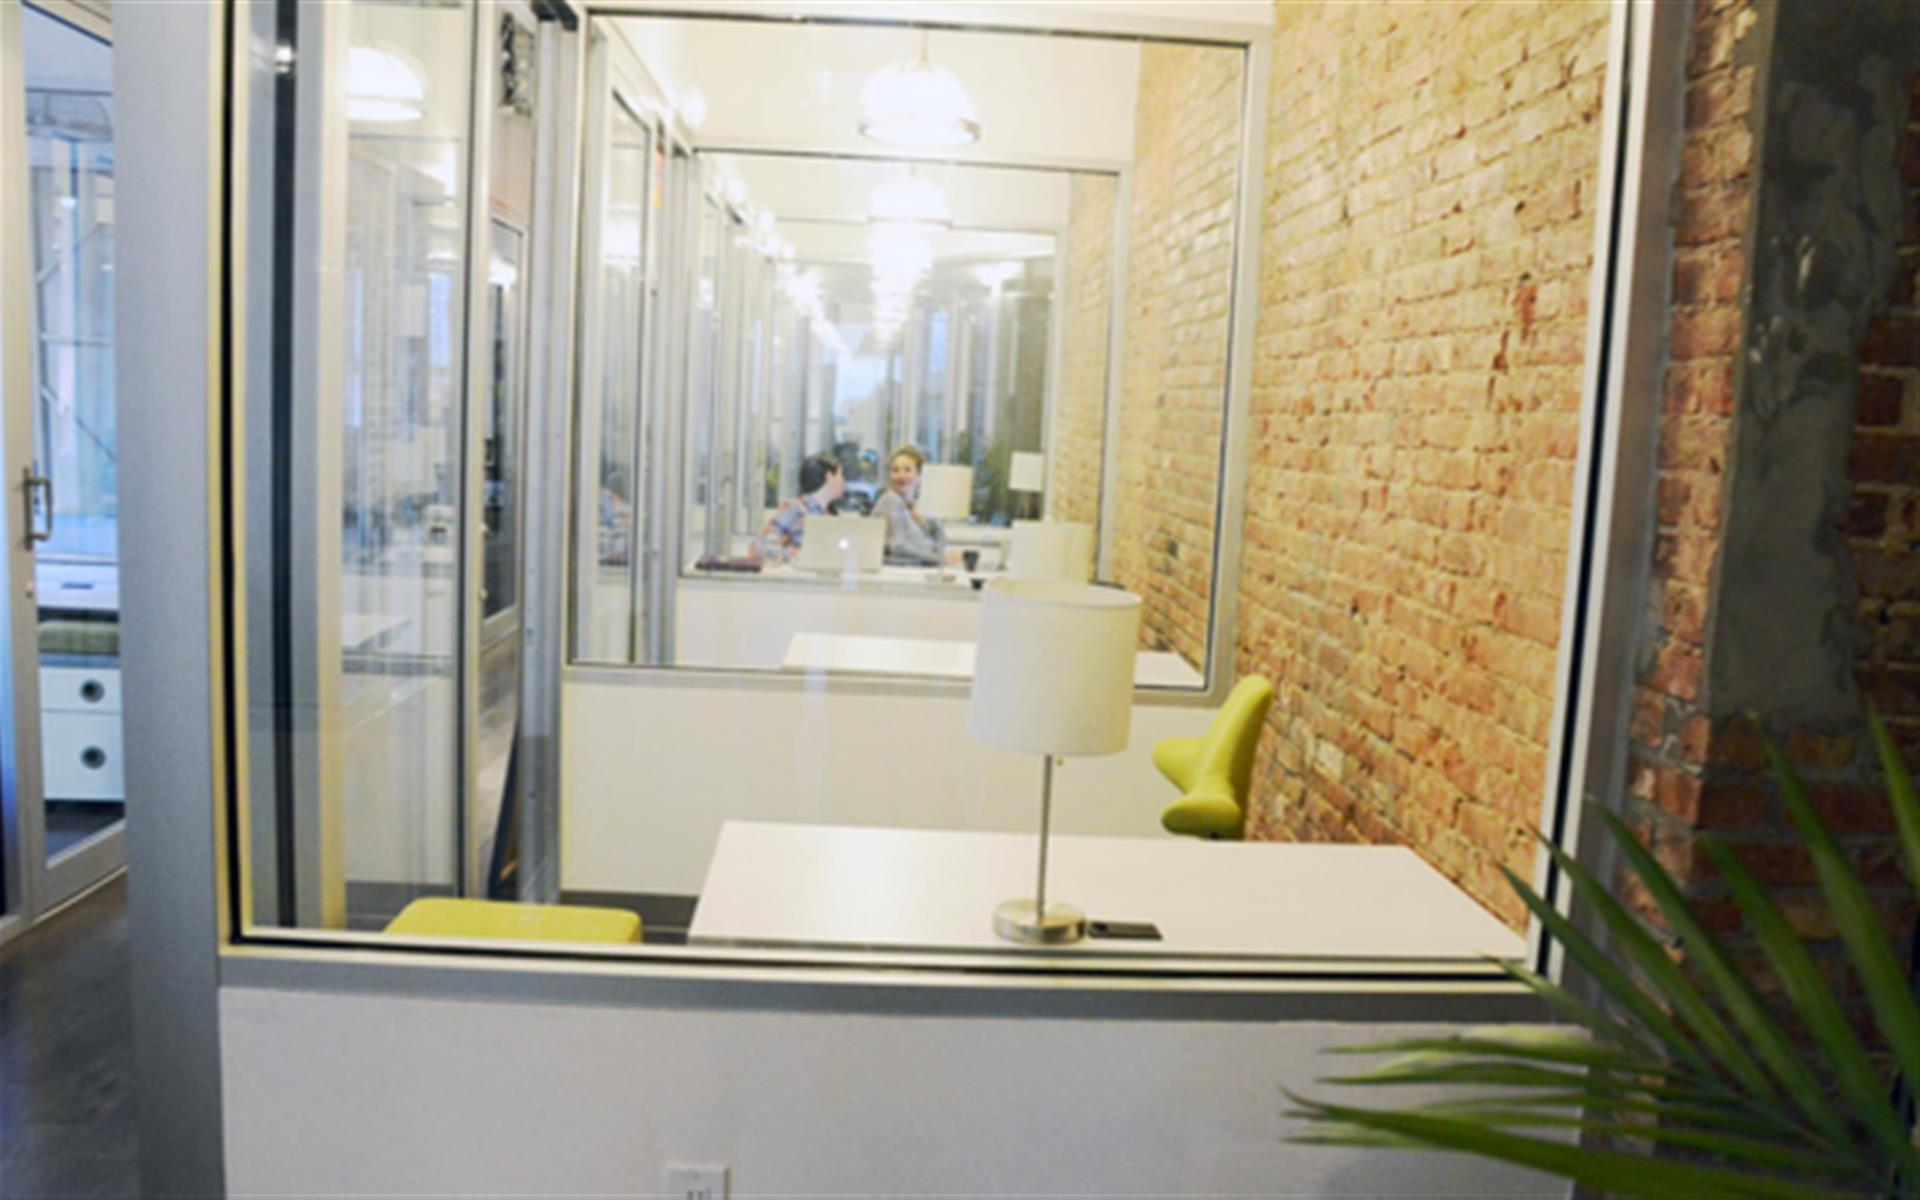 District CoWork - Monthly Office for 1